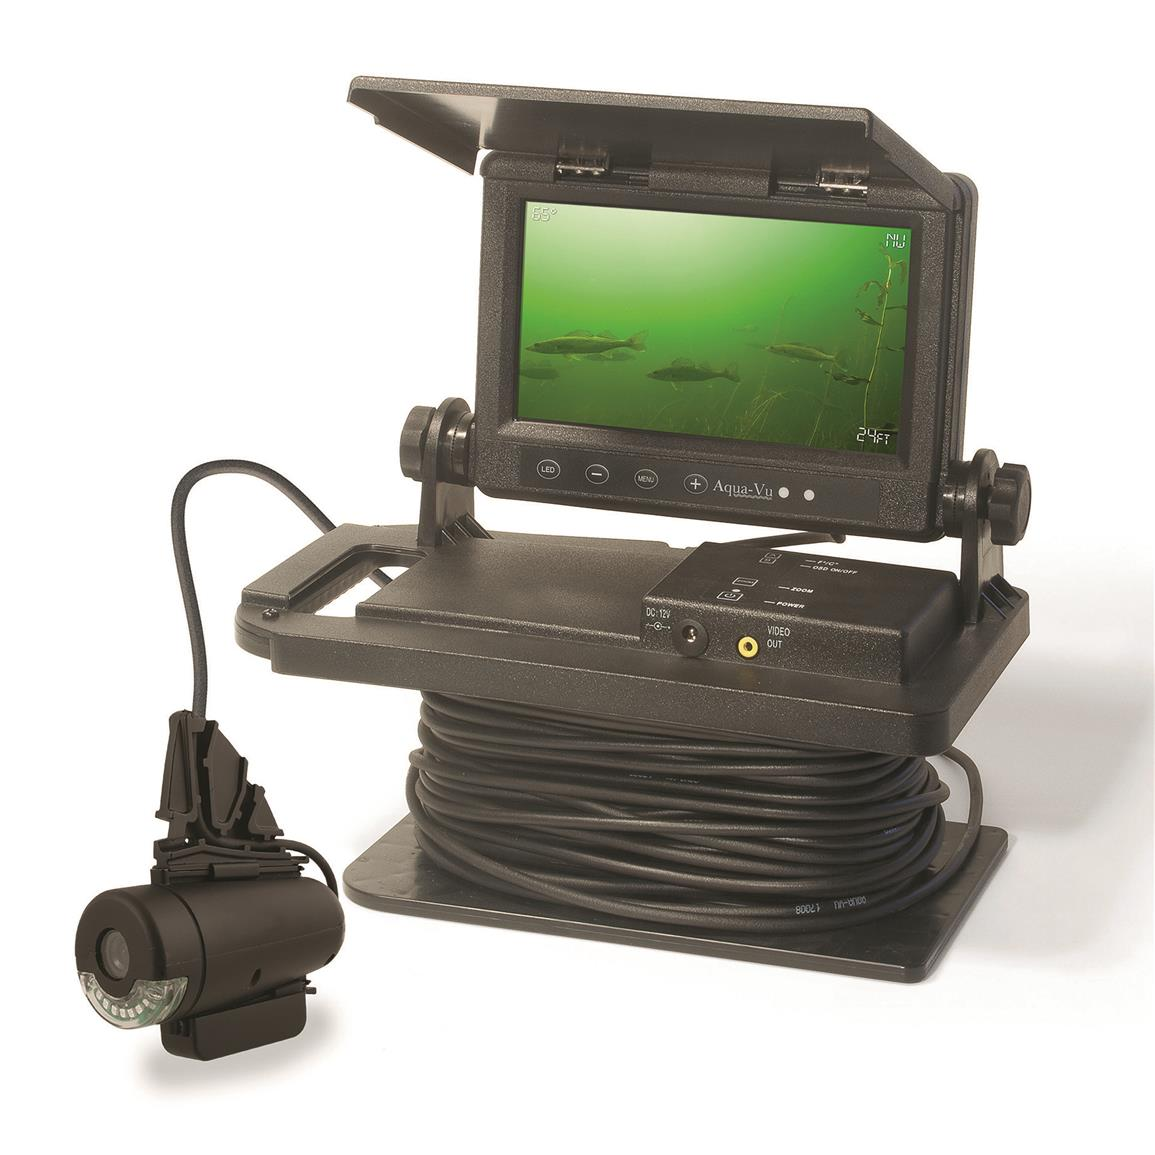 Aqua vu av760czi 7 color underwater camera system for Ice fishing electronics